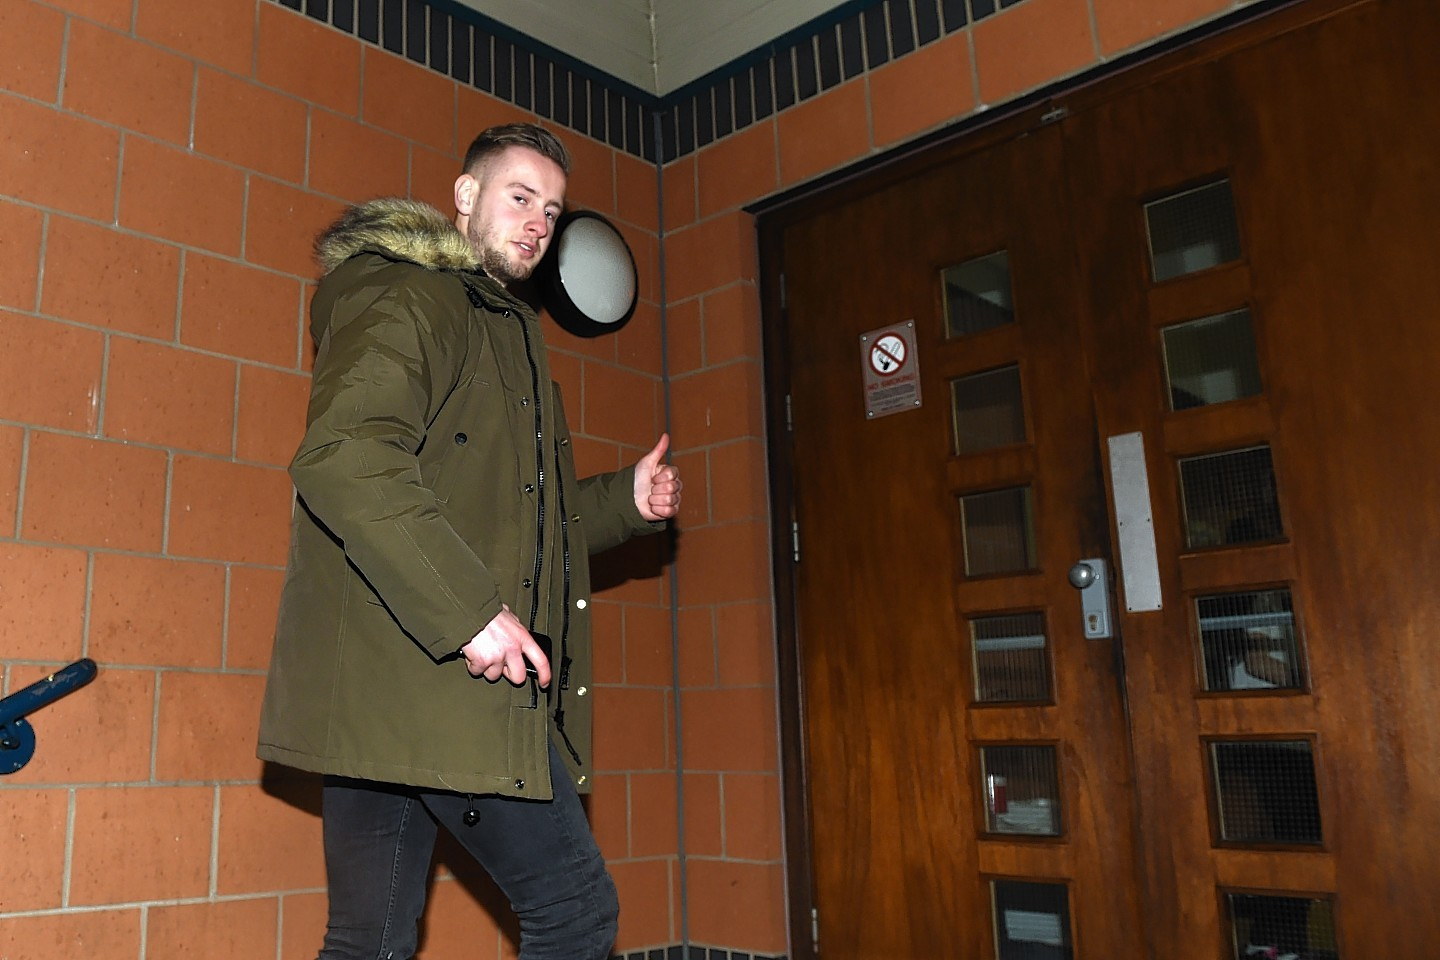 Billy King gives the cameras the thumbs up as he arrives at Murray Park to complete his move